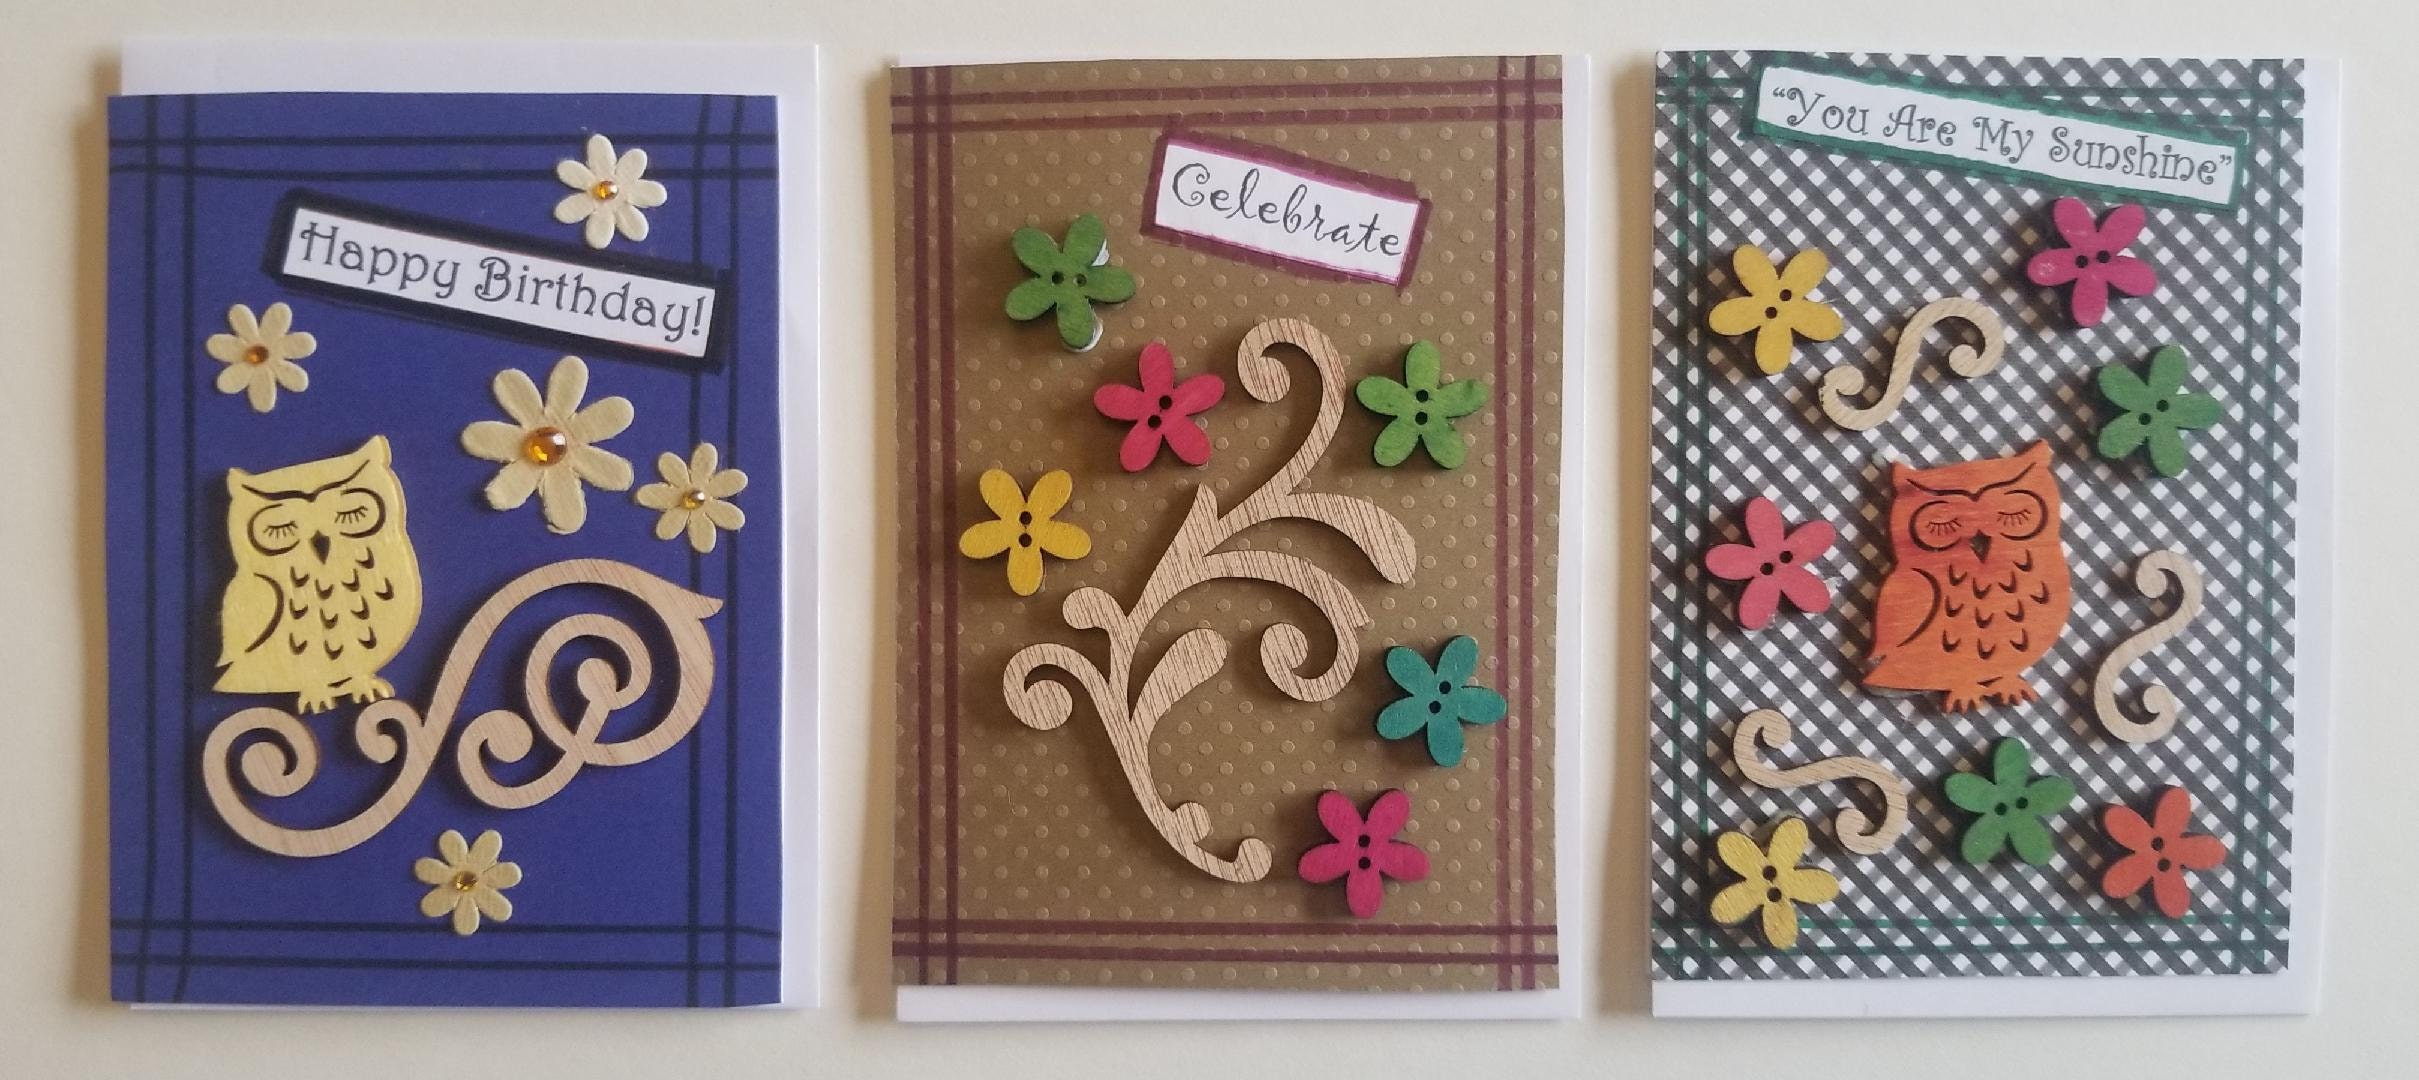 3 Handcrafted Greeting Cards